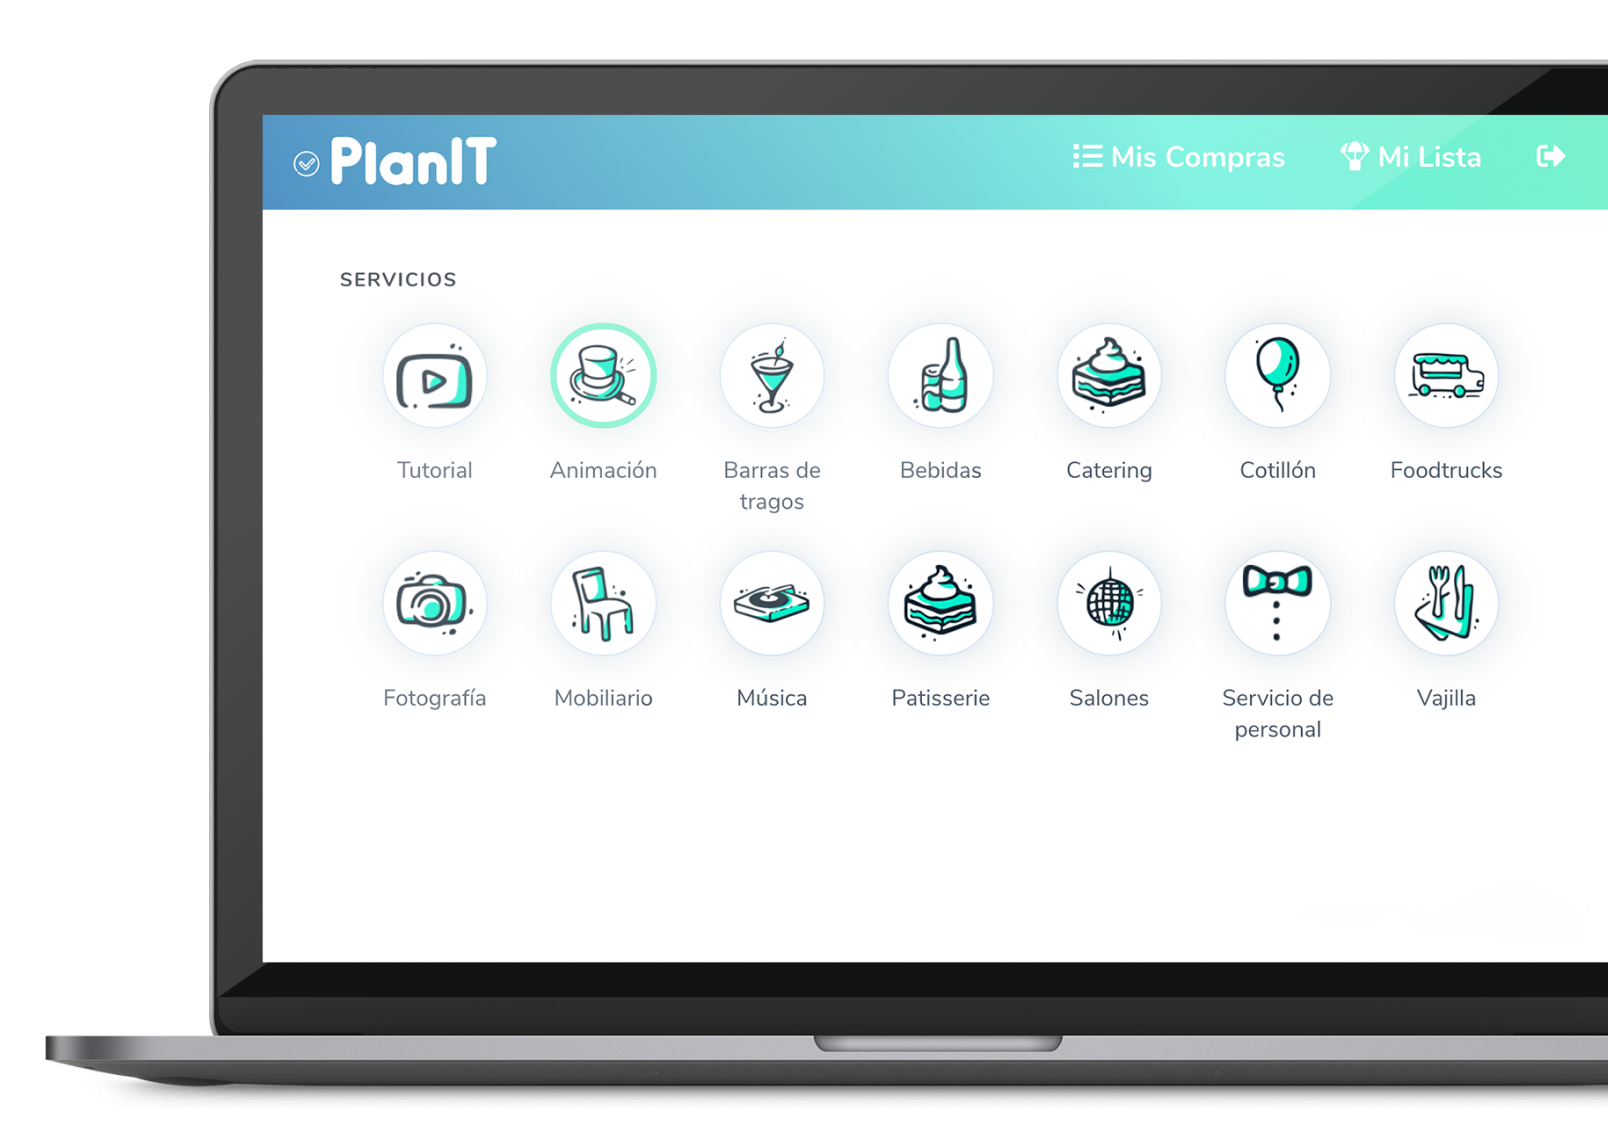 Planit home page